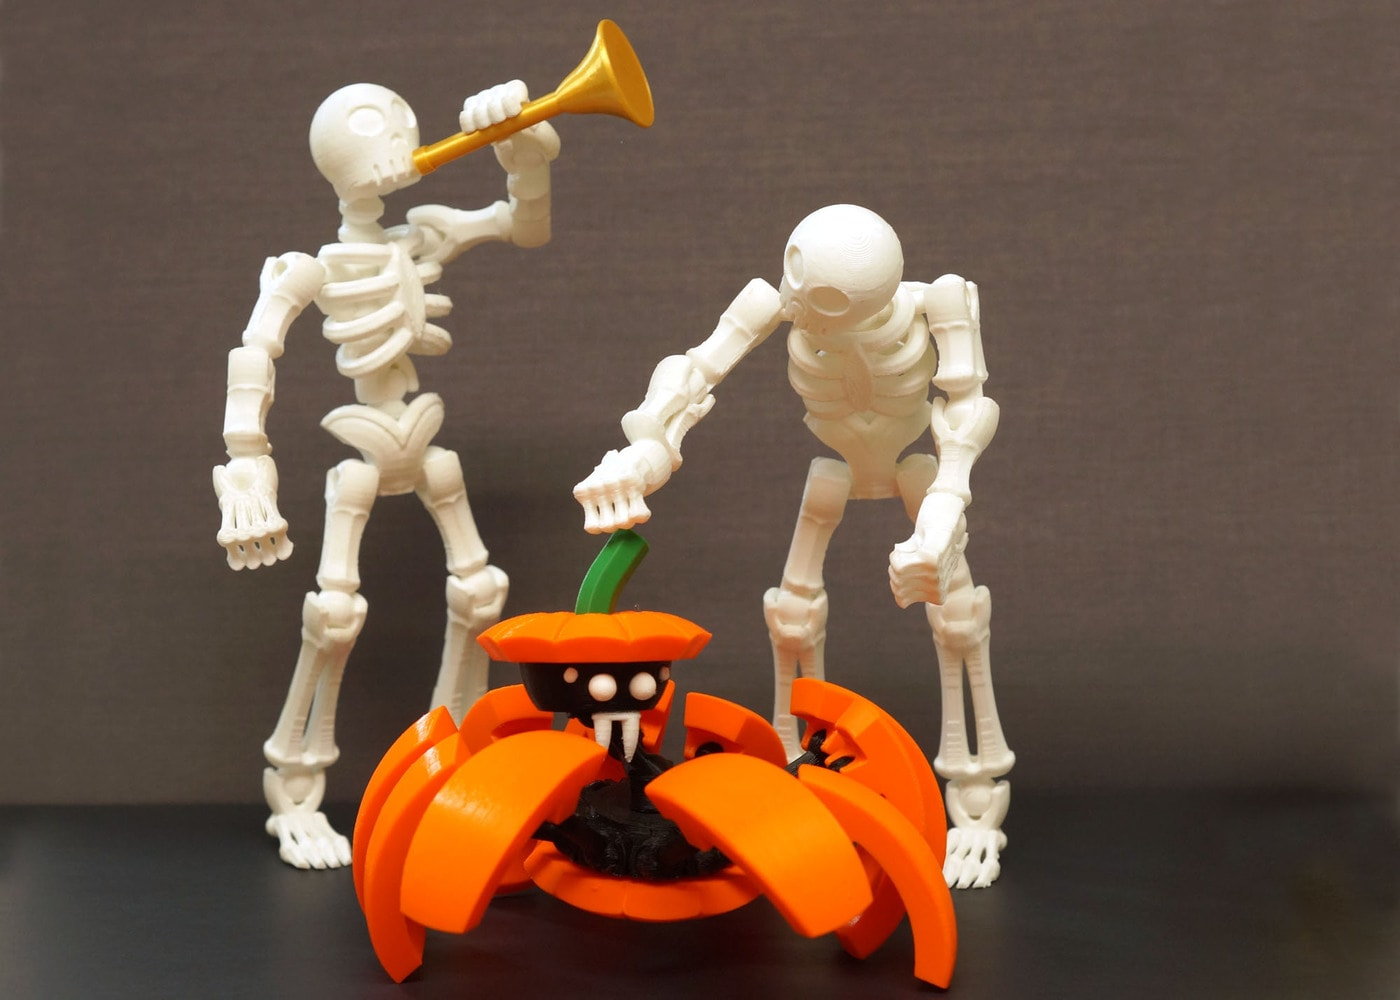 3d printed Halloween toys: two skeleton action figures and a pumpkin spider transformer